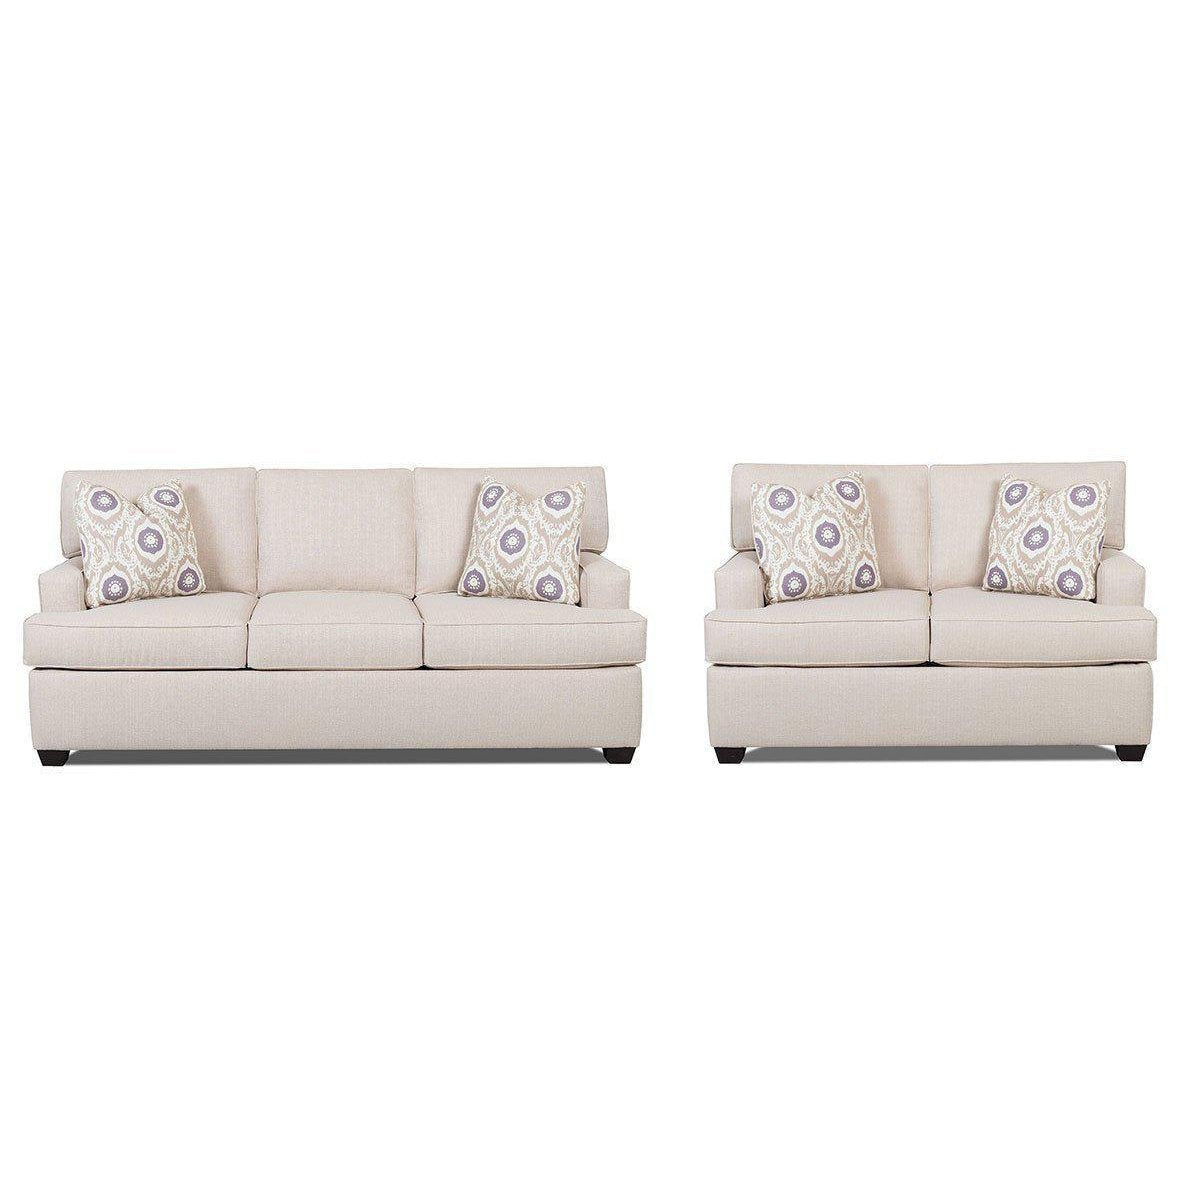 Cruze Living Room Set